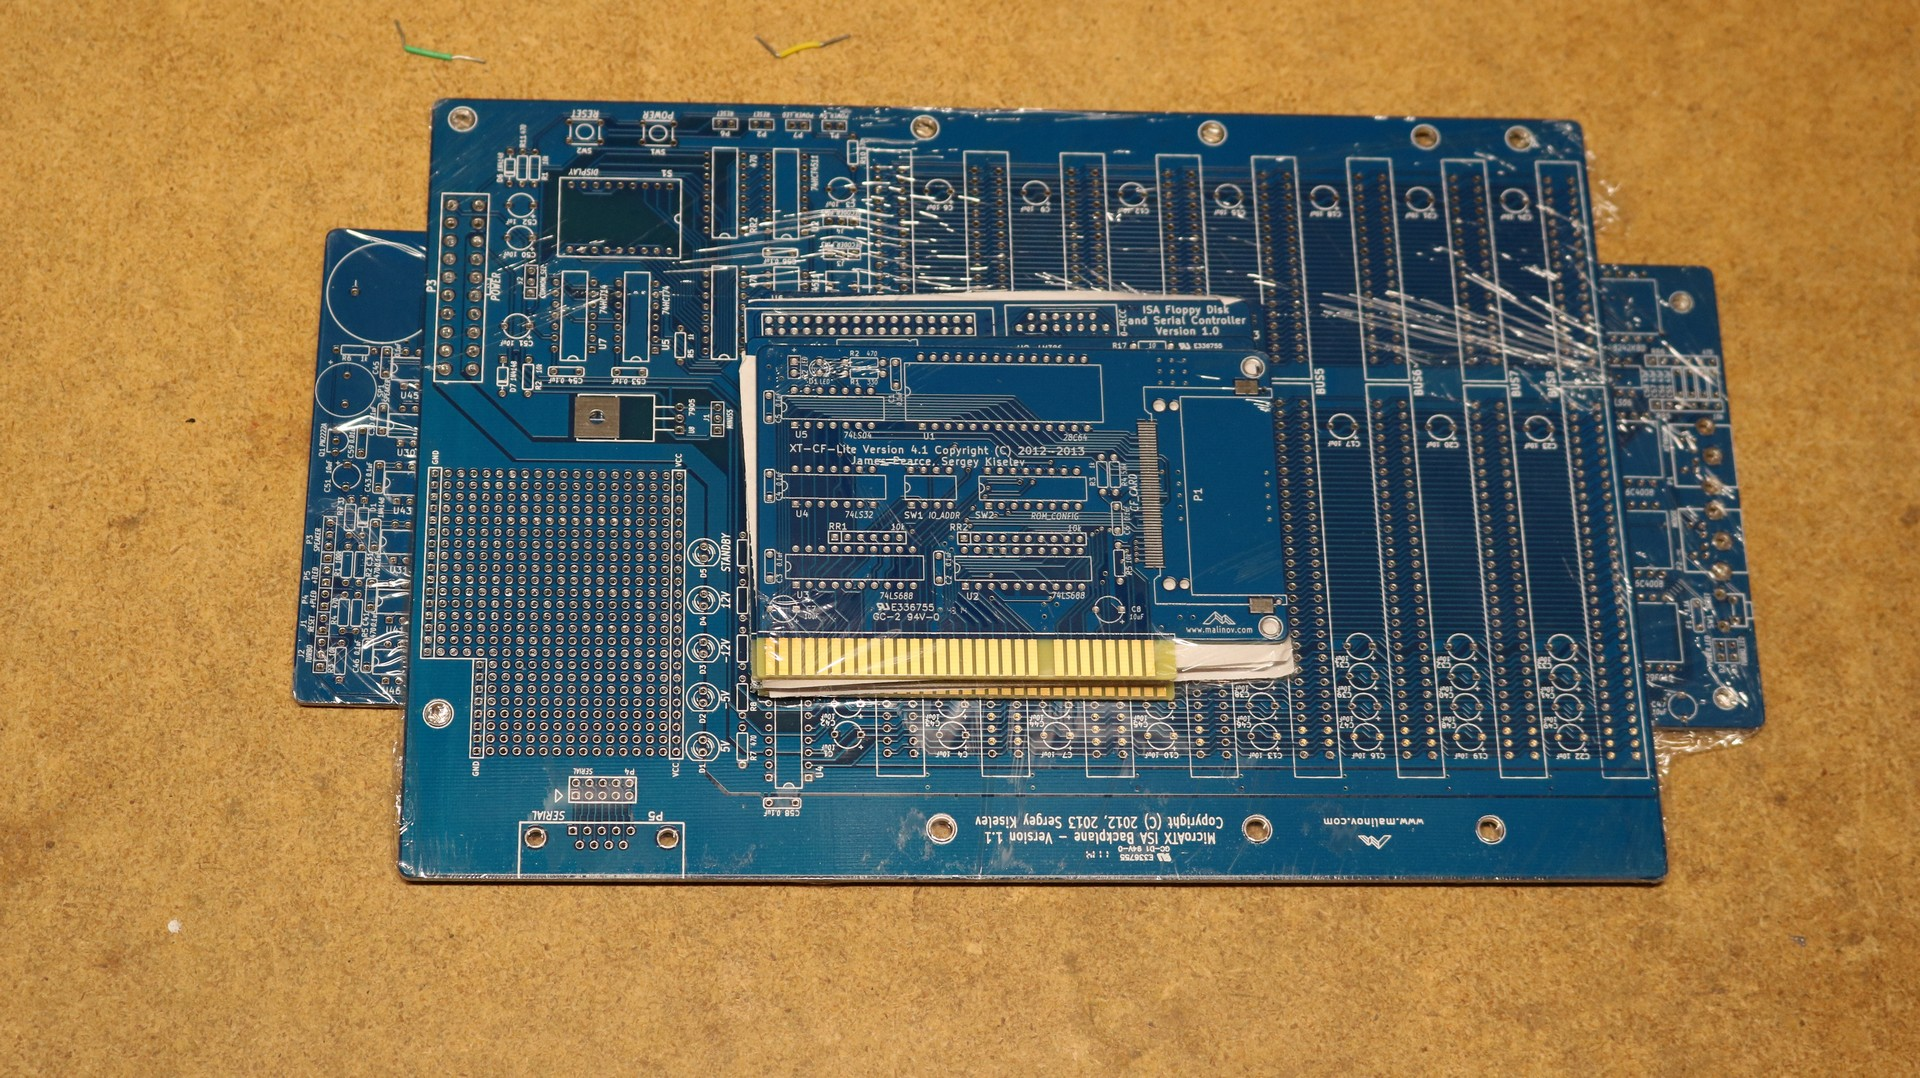 Building An Xi 8088 Pc Dr Scott M Baker Motherboard Circuit Board Components Find A Set Of And Related Boards